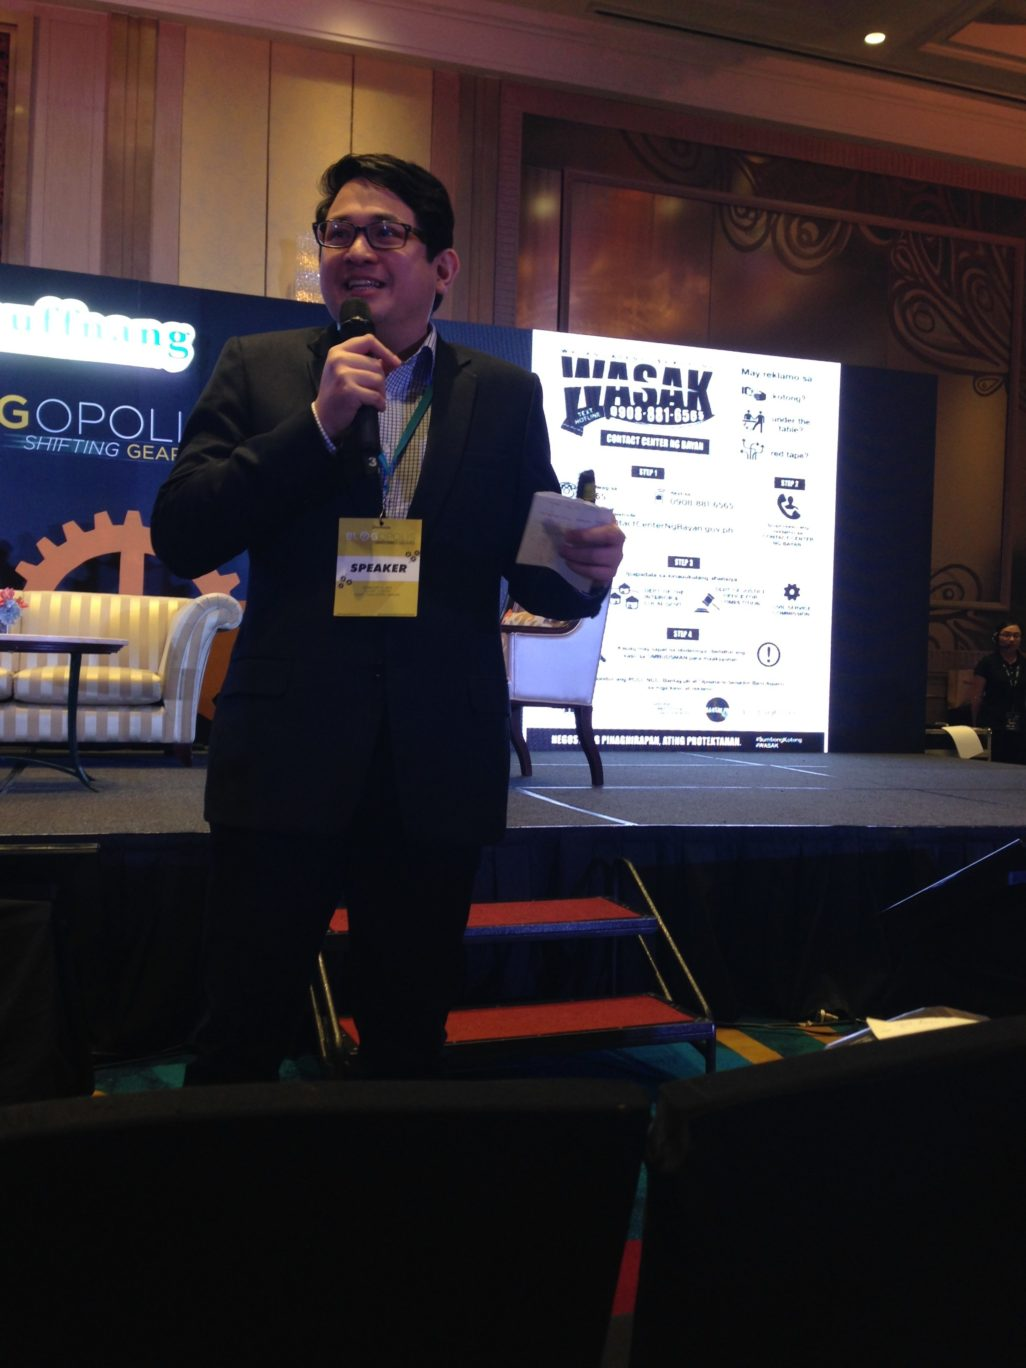 Senator Bam Aquino shared how social media plays an important role in disseminating relevant  news and information.   It was funny how he shared that a photo of his newly born son garnered so much more likes than his socio-political updates. :)